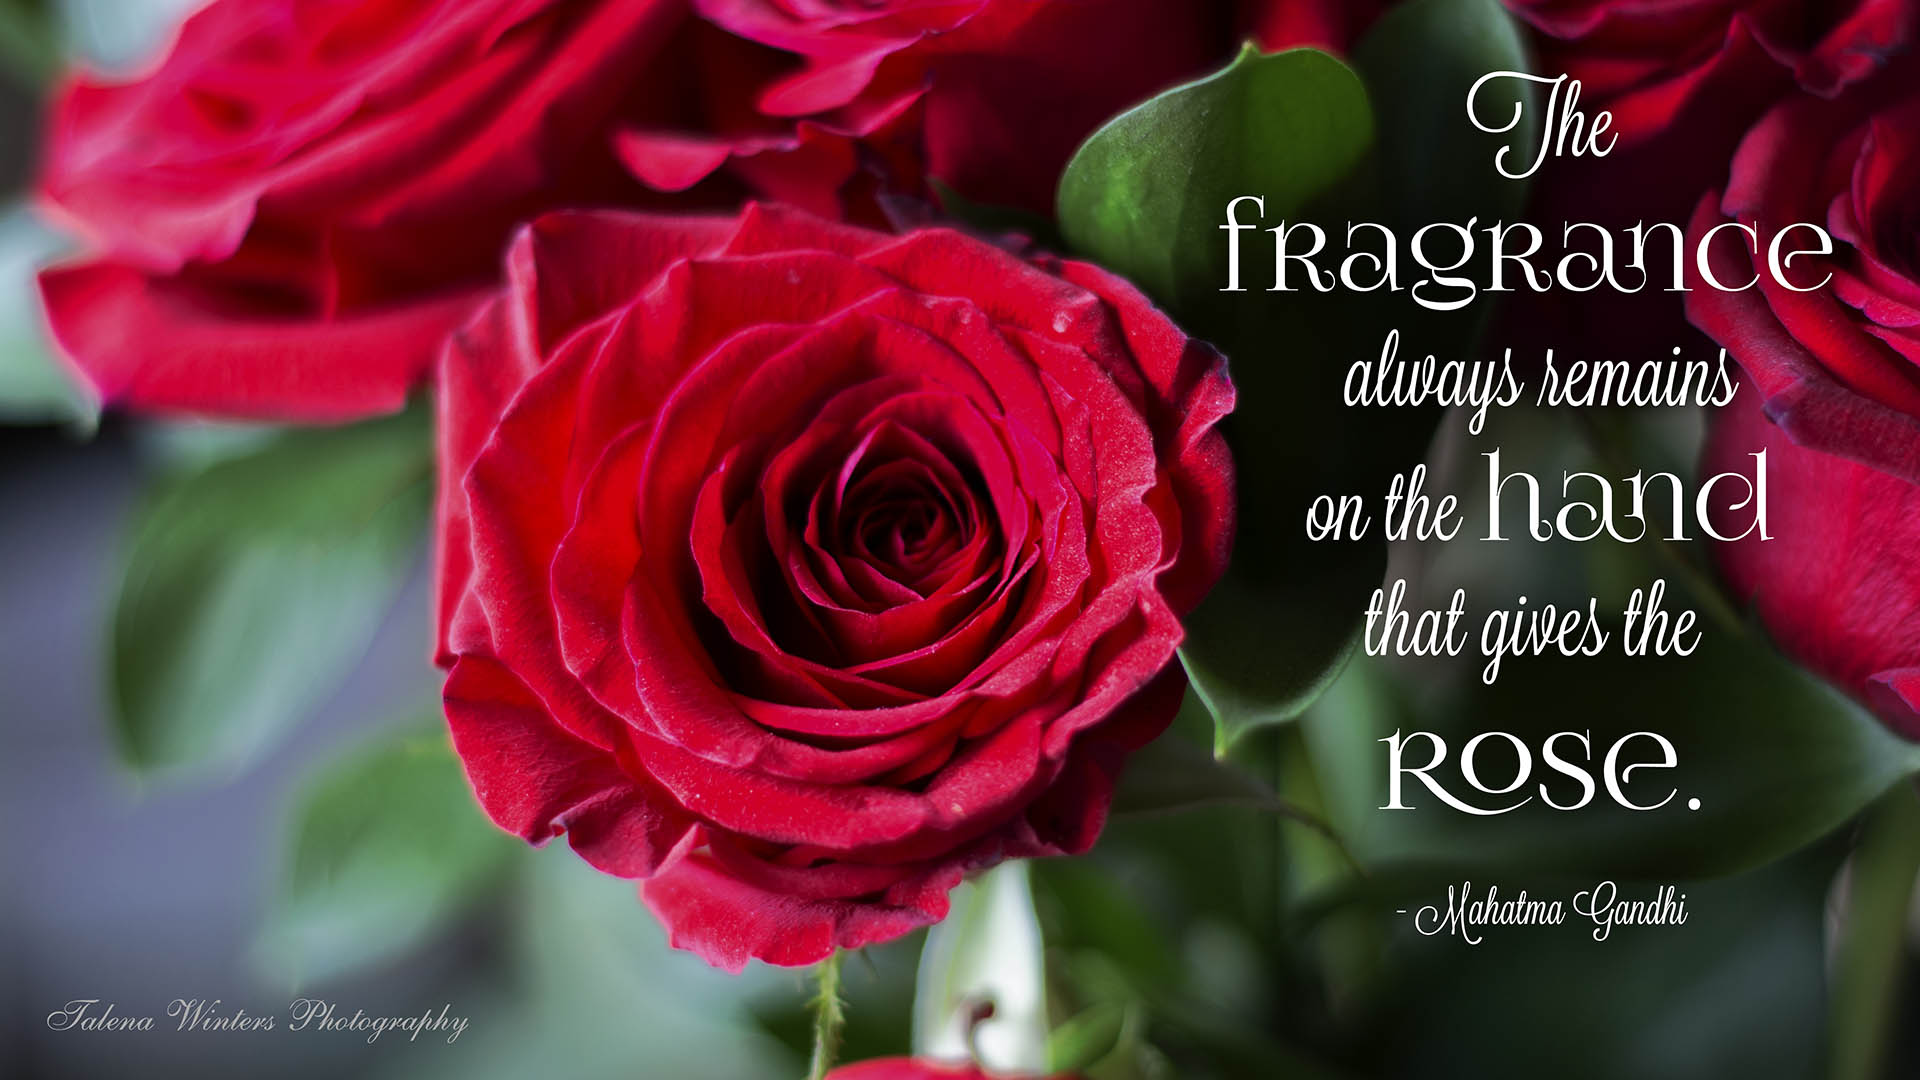 """""""The fragrance always remains on the hand that gives the rose."""" - Mahatma Gandhi. Desktop wallpaper from www.talenawinters.com."""